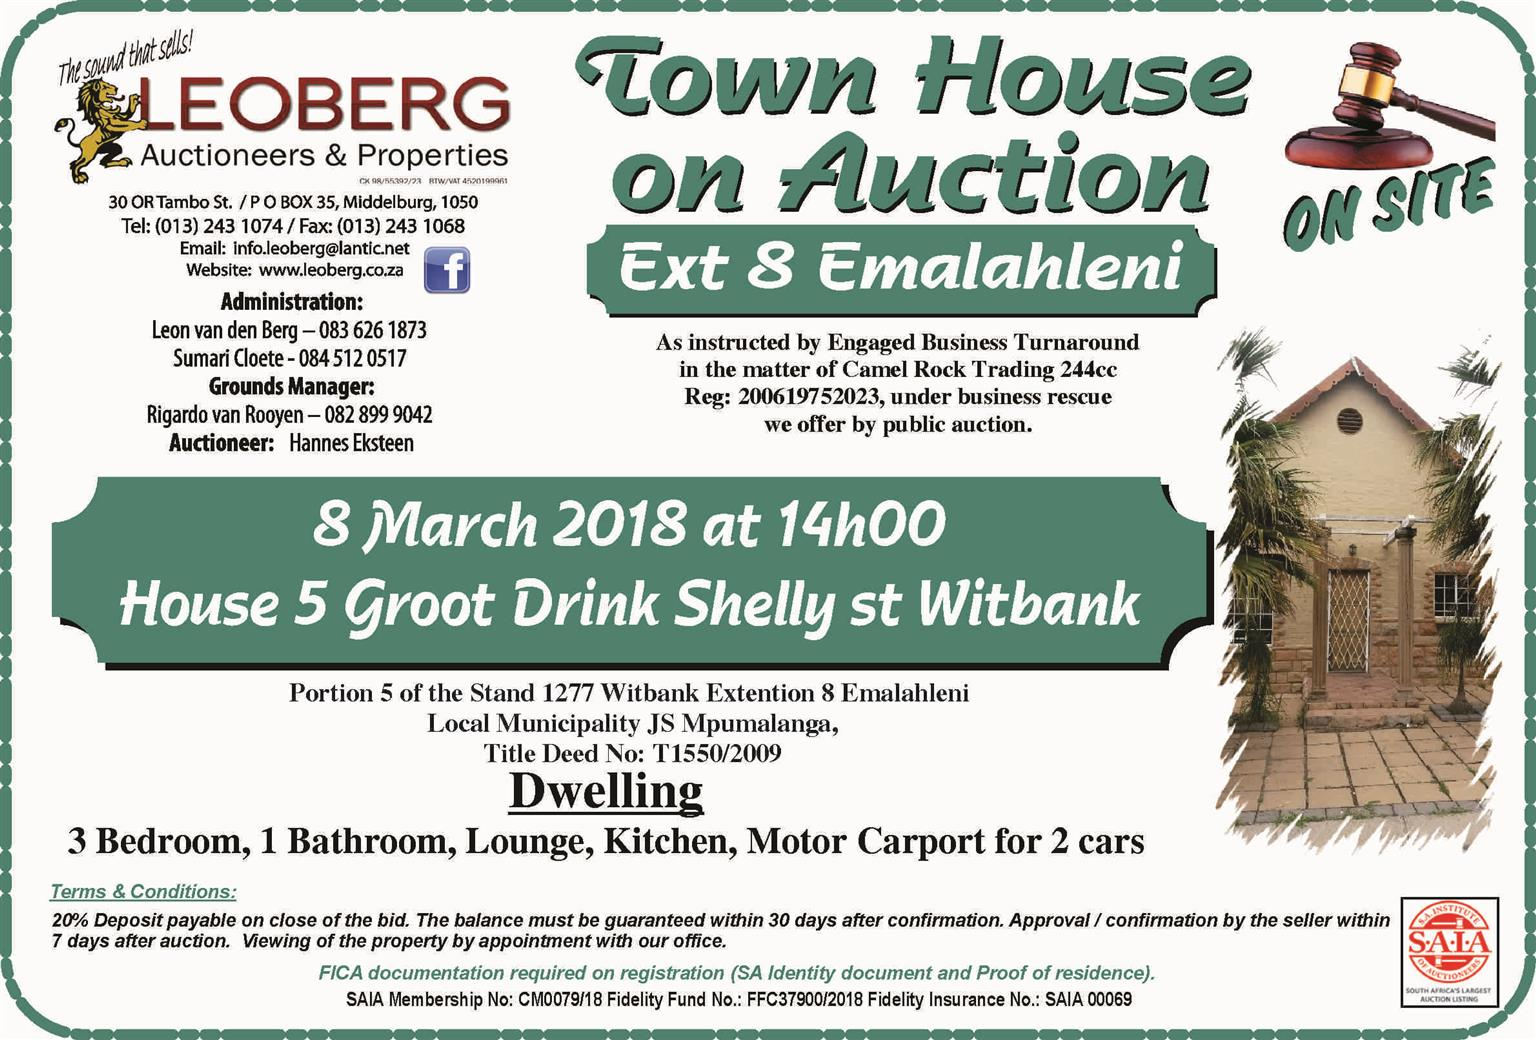 3 Bedroom Town House on Auction - 8 March 2018 at 14h00